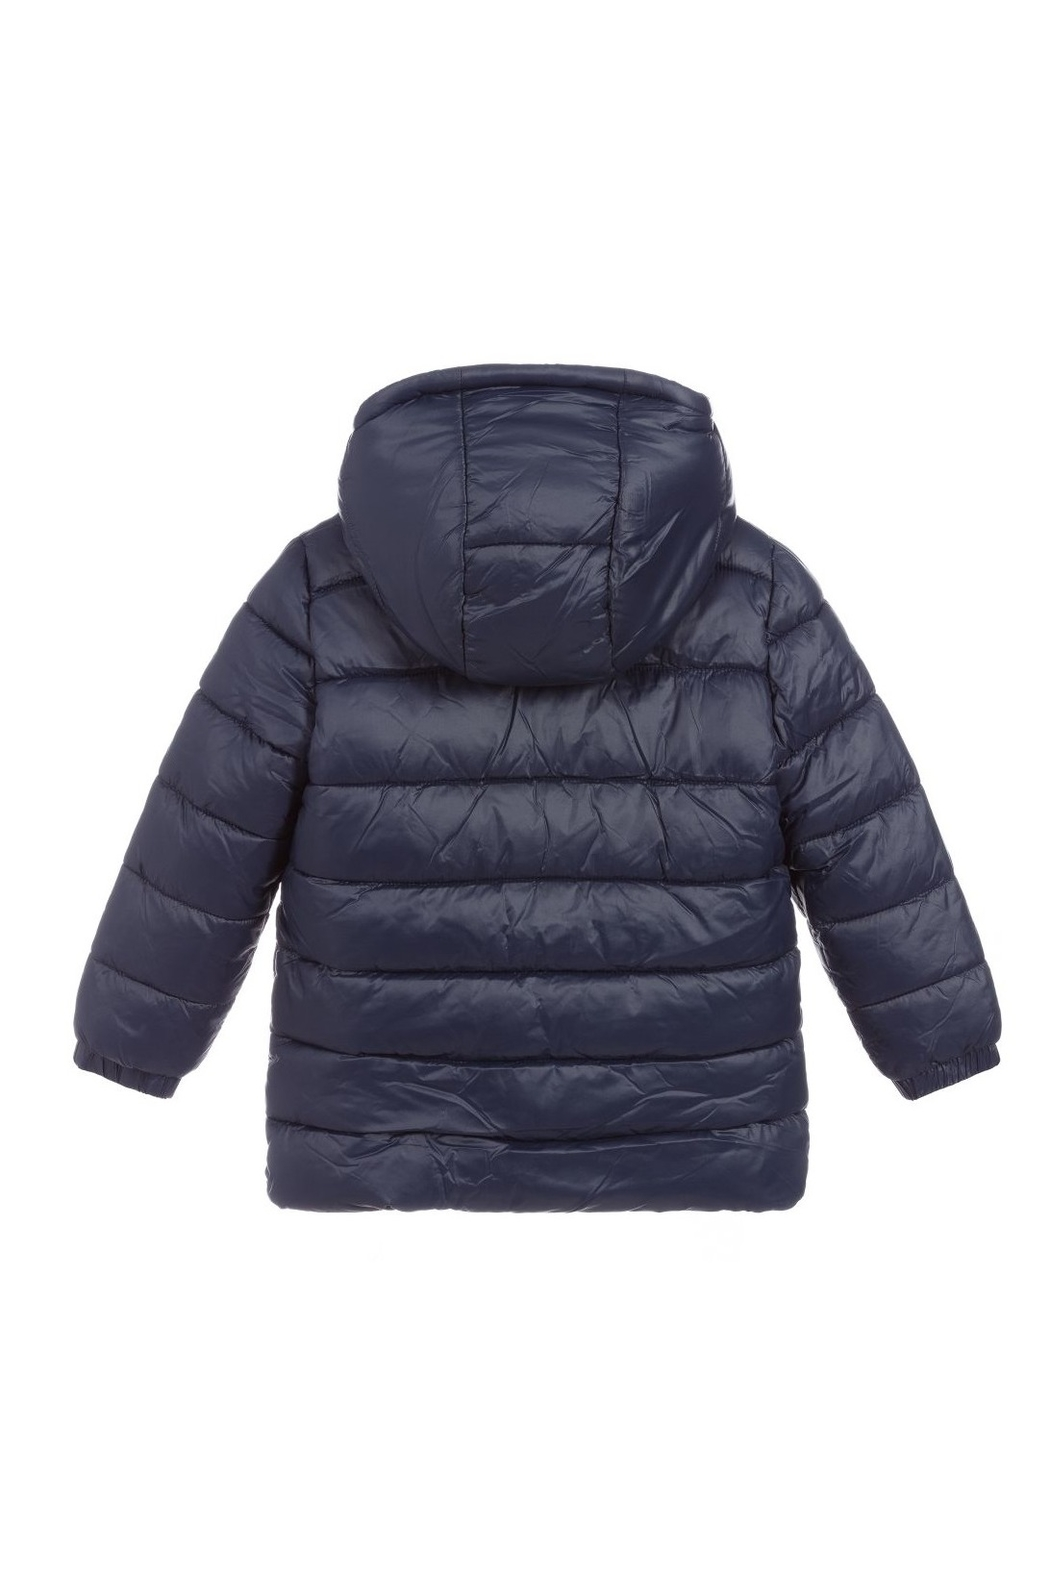 Carrement Beau  Kid's Navy Puffer Water Repellent Jacket (Unisex) - Side Cropped Image